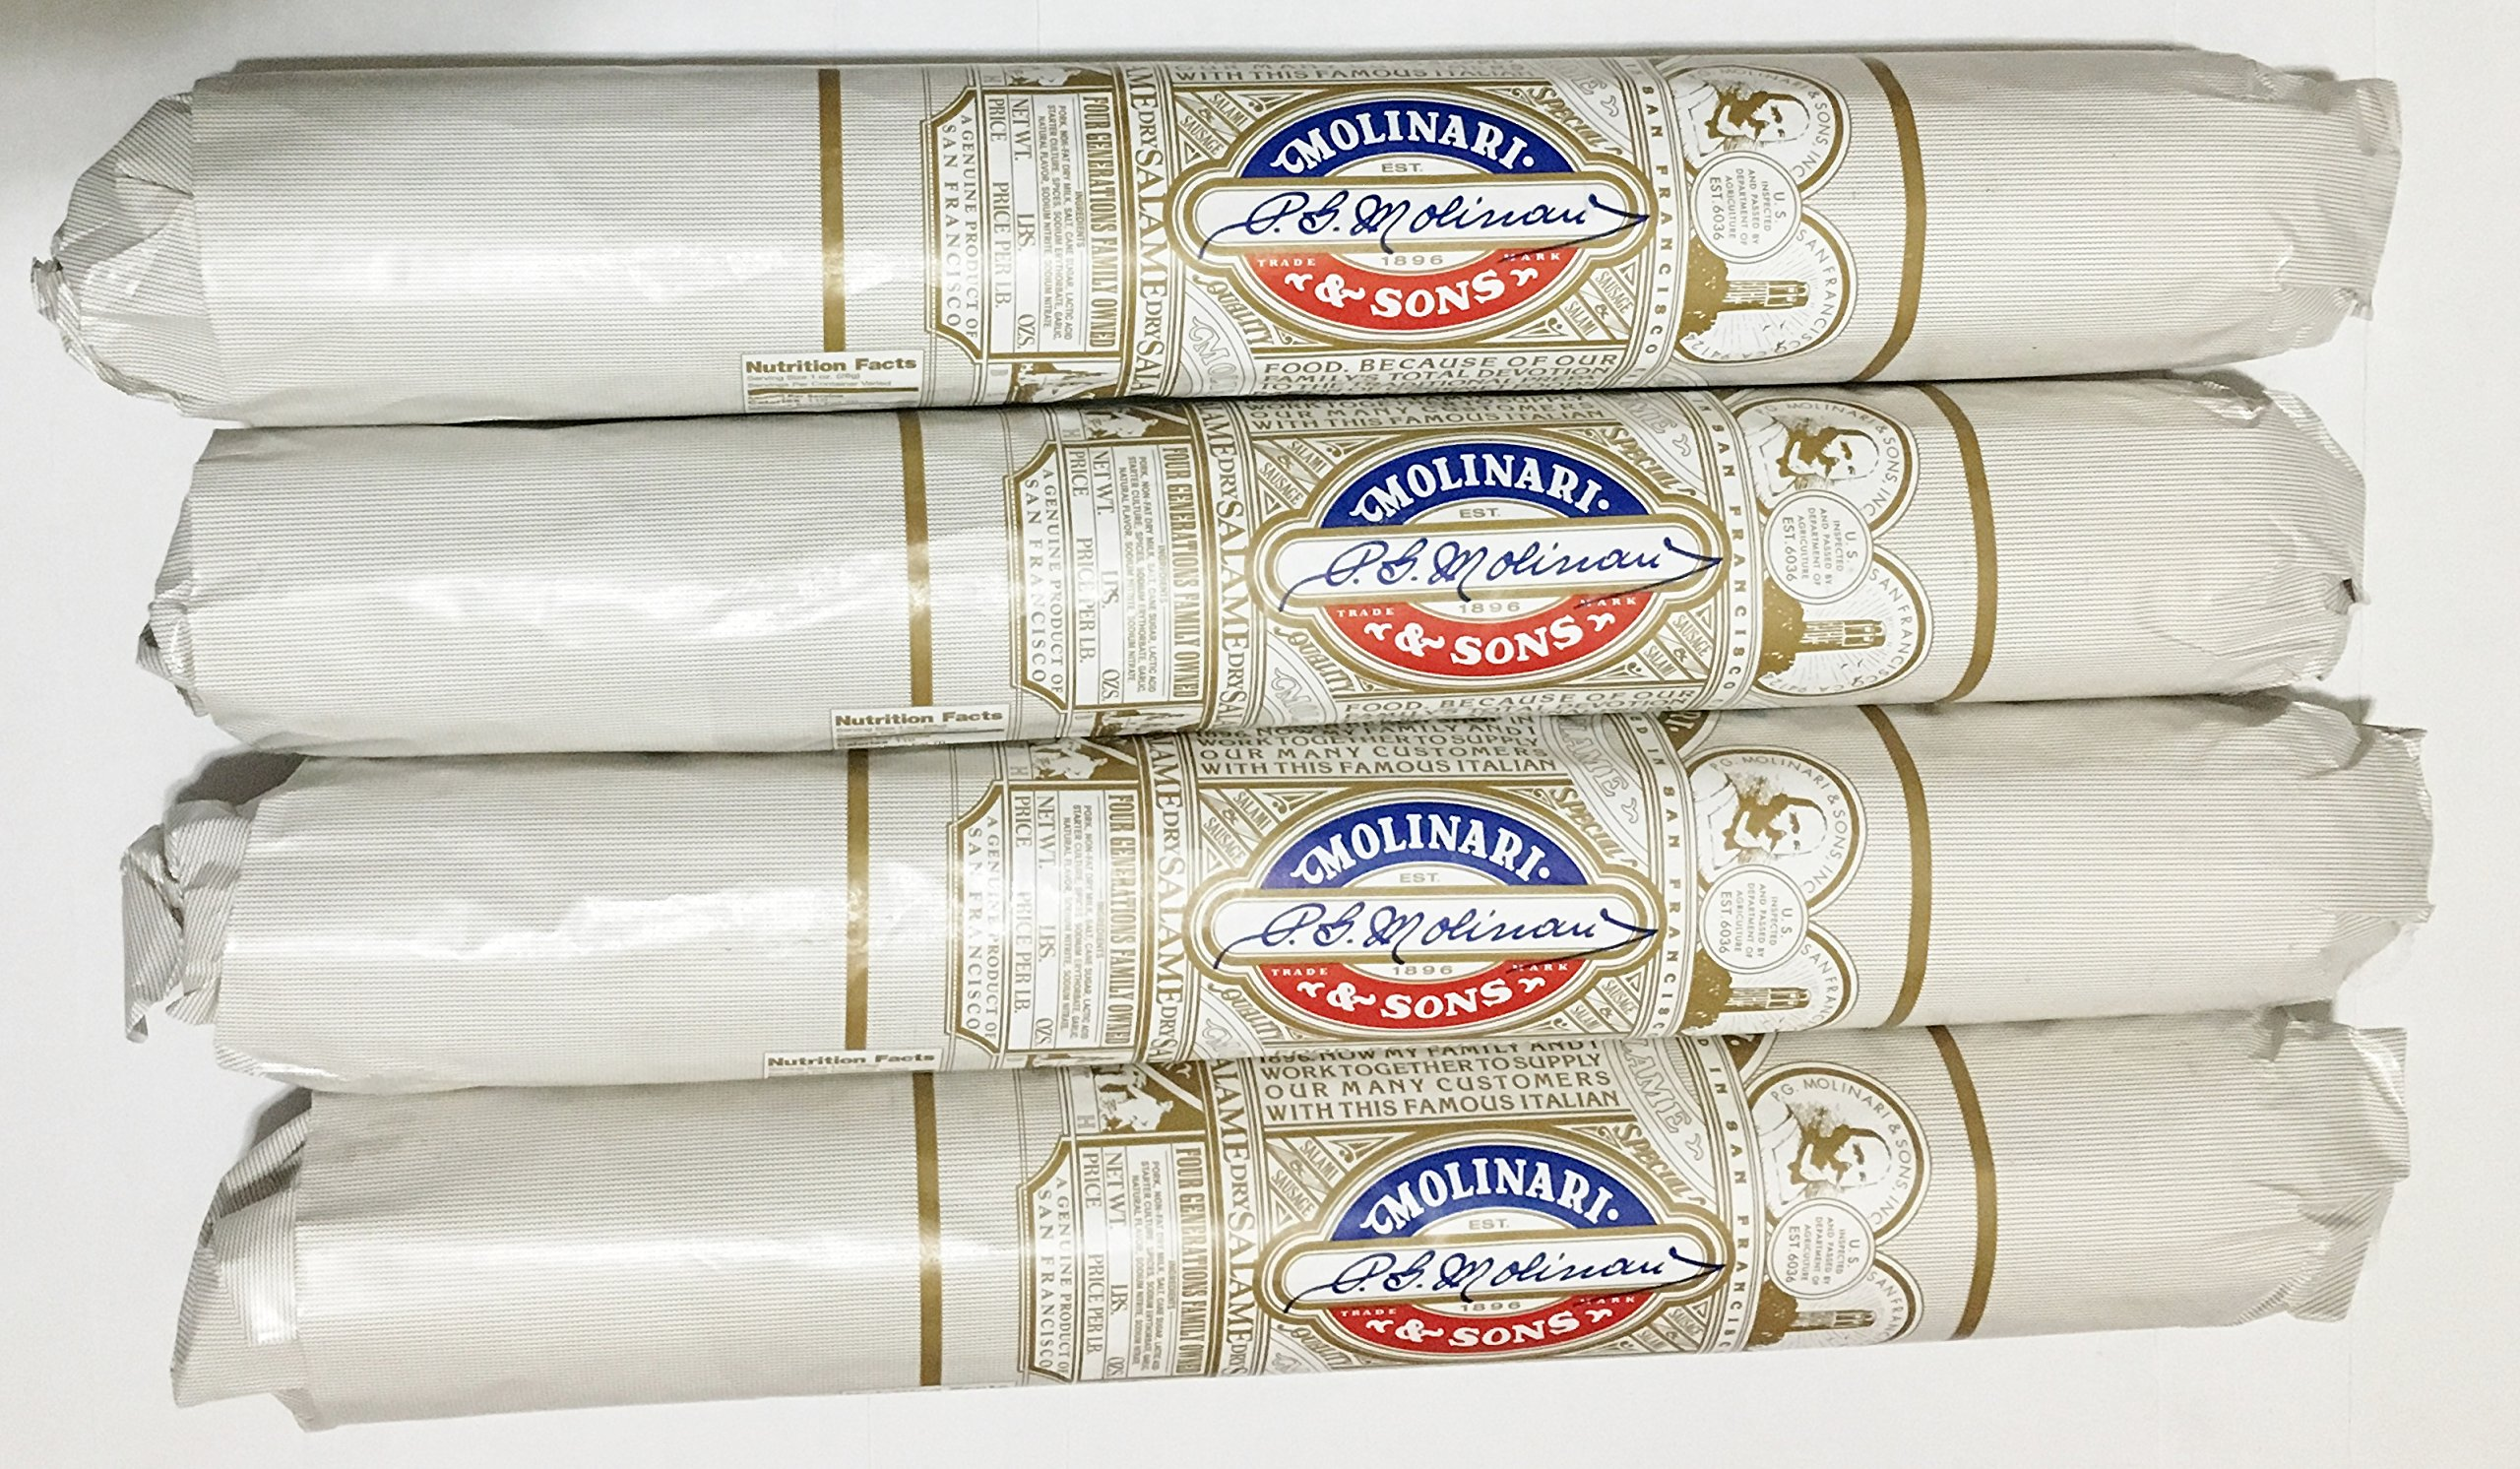 Molinari & Sons San Francisco Italian Dry Salami 3lb Stick Molded Paper Wrapped (Pack of 4) by Molinari & Sons